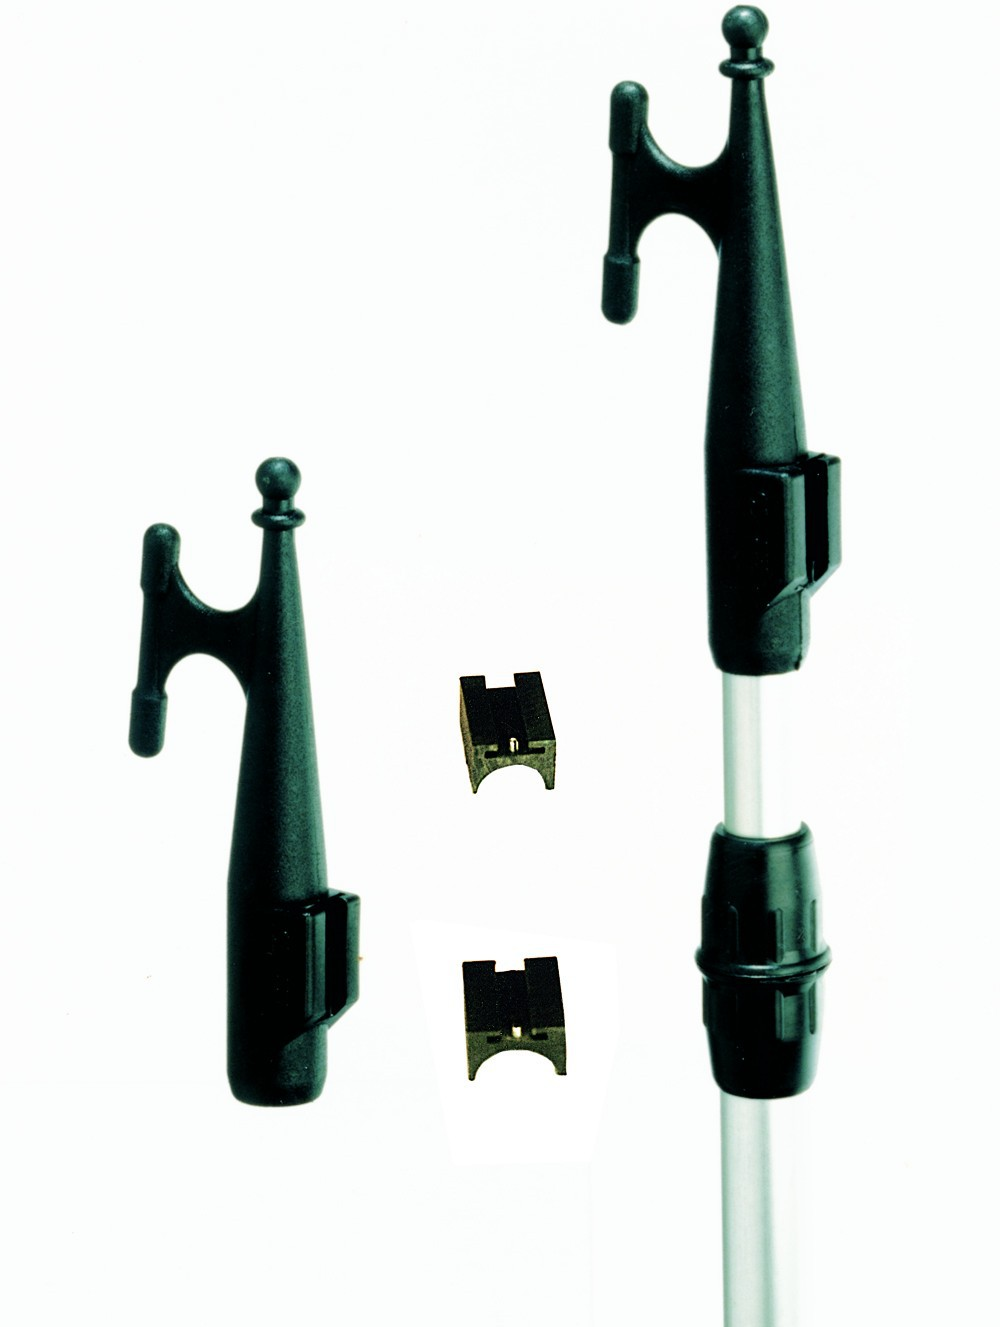 Boat hooks and extensions